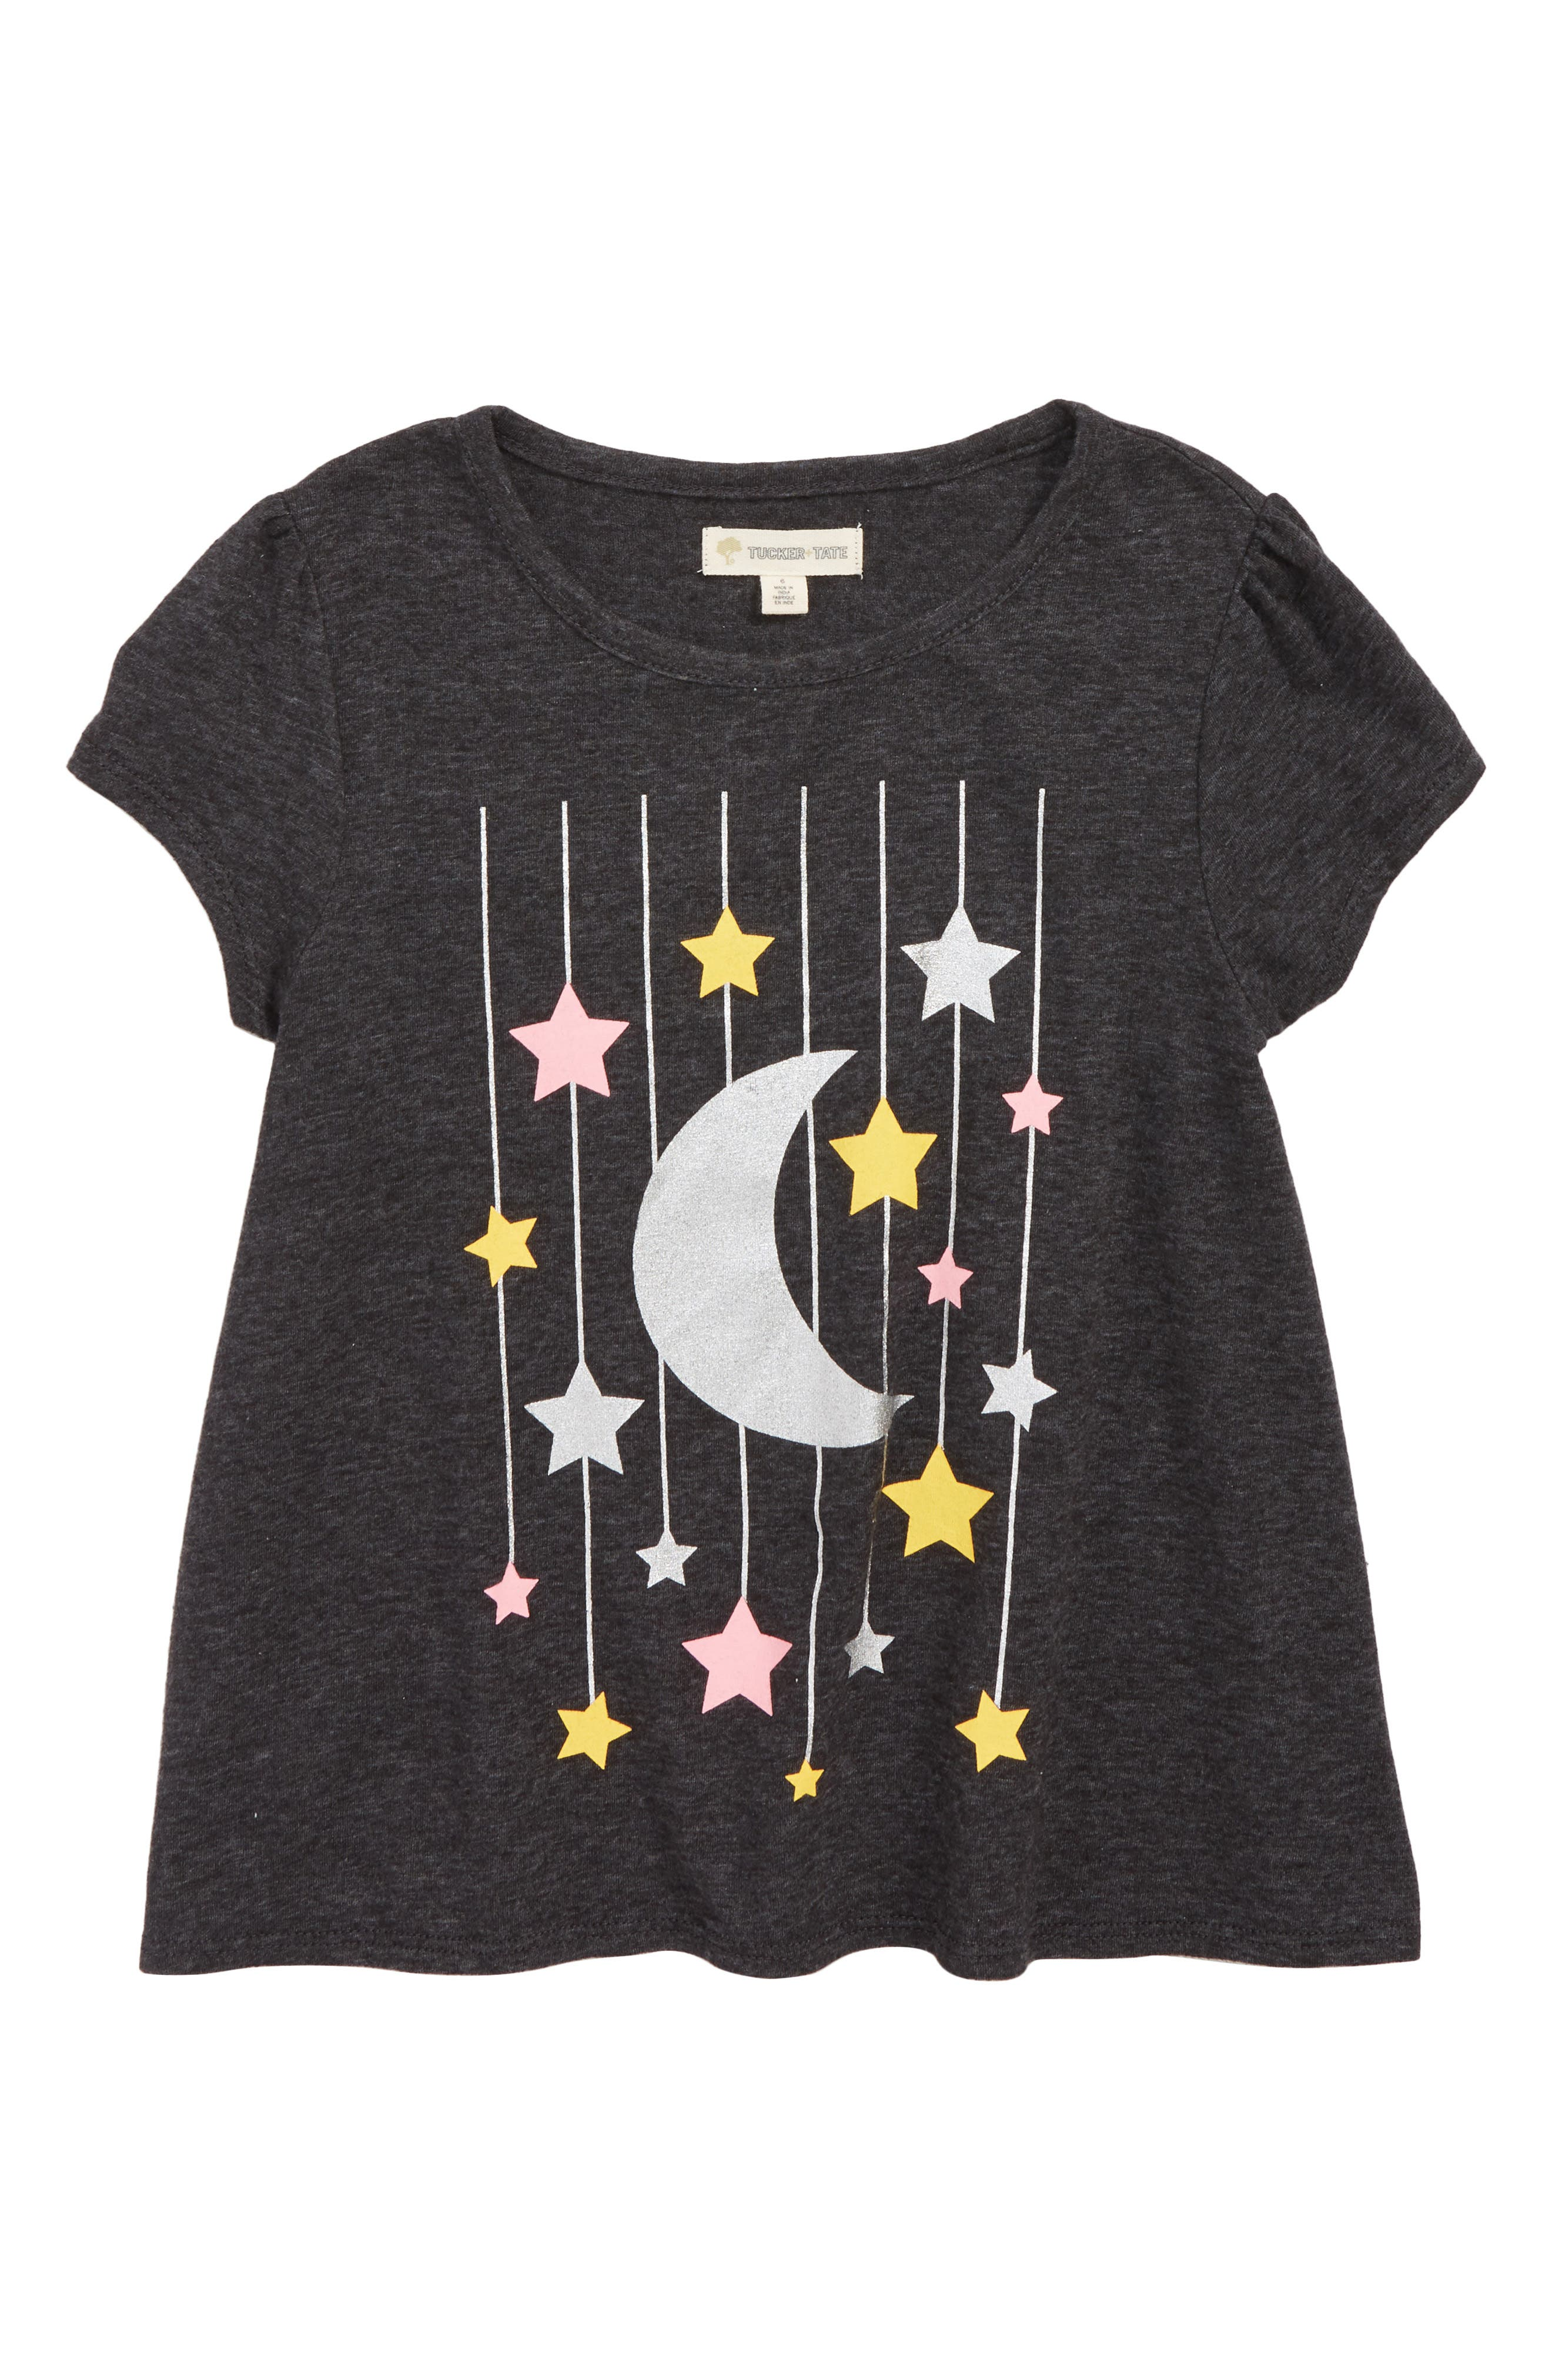 Sparkle Graphic Tee,                         Main,                         color, BLACK MOON AND STARS